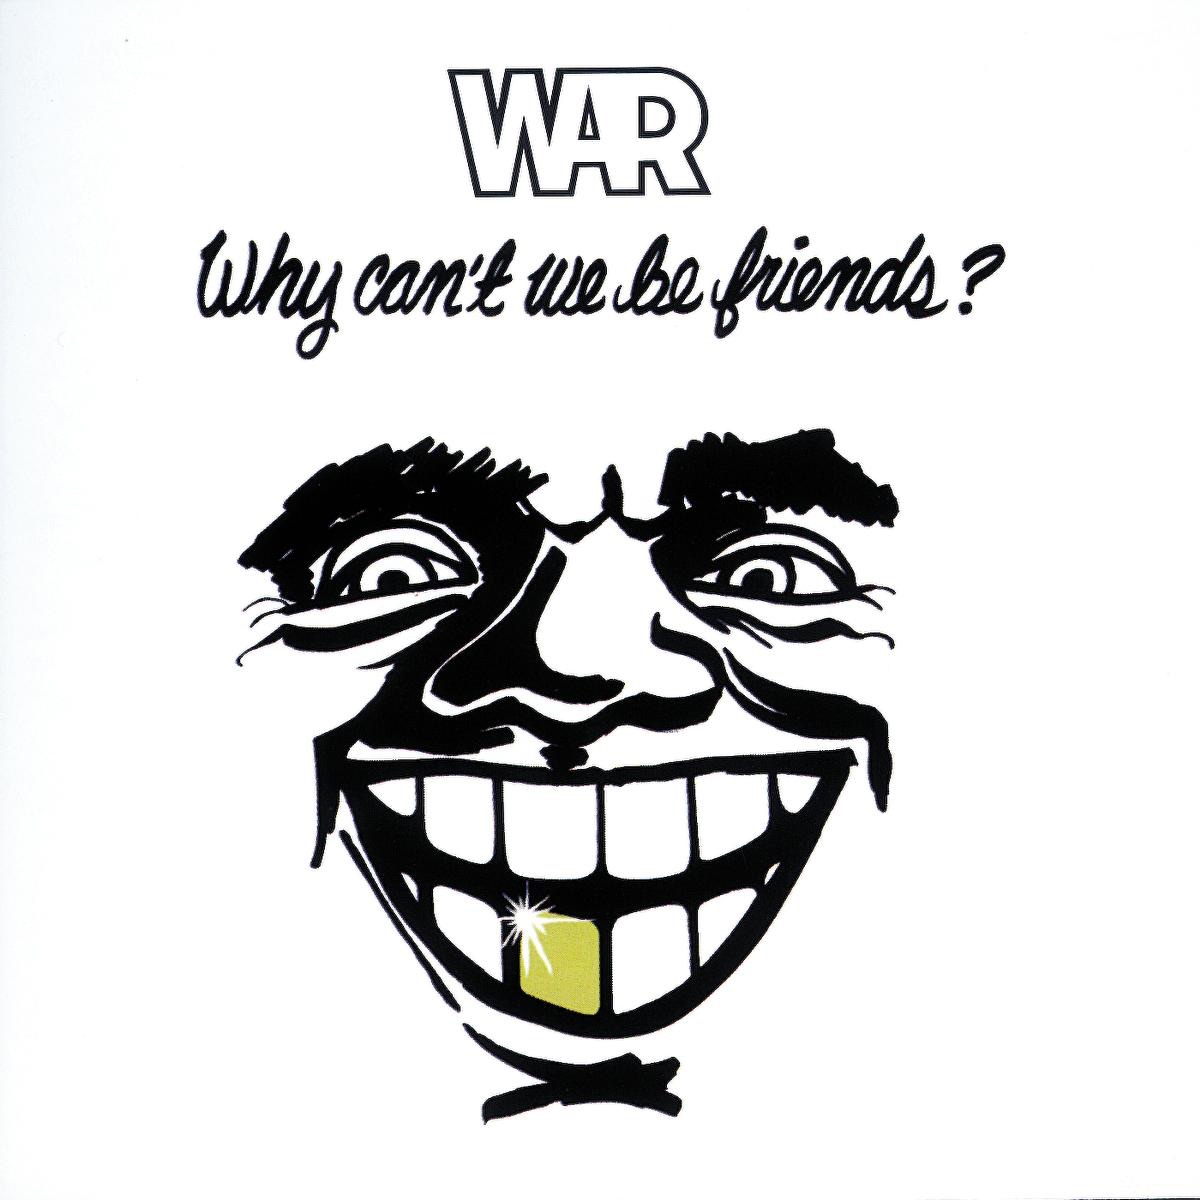 Why Cant We Be Friends War CD cover